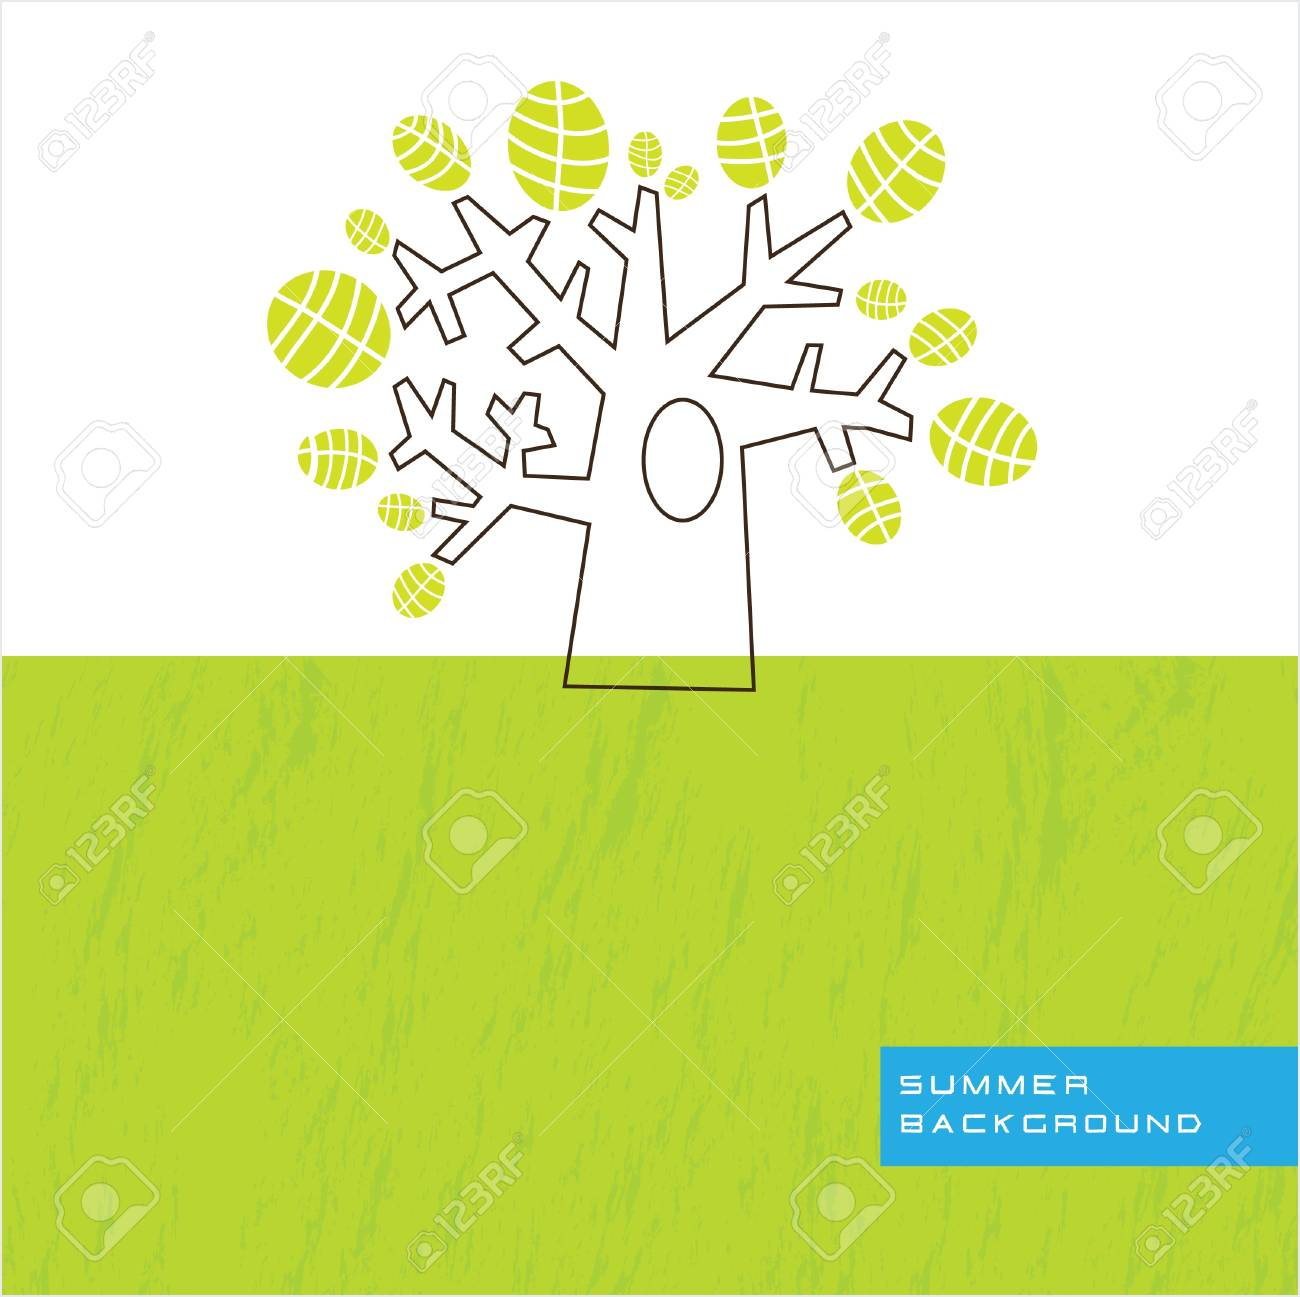 a silhouette image of a large tree Stock Vector - 12488397